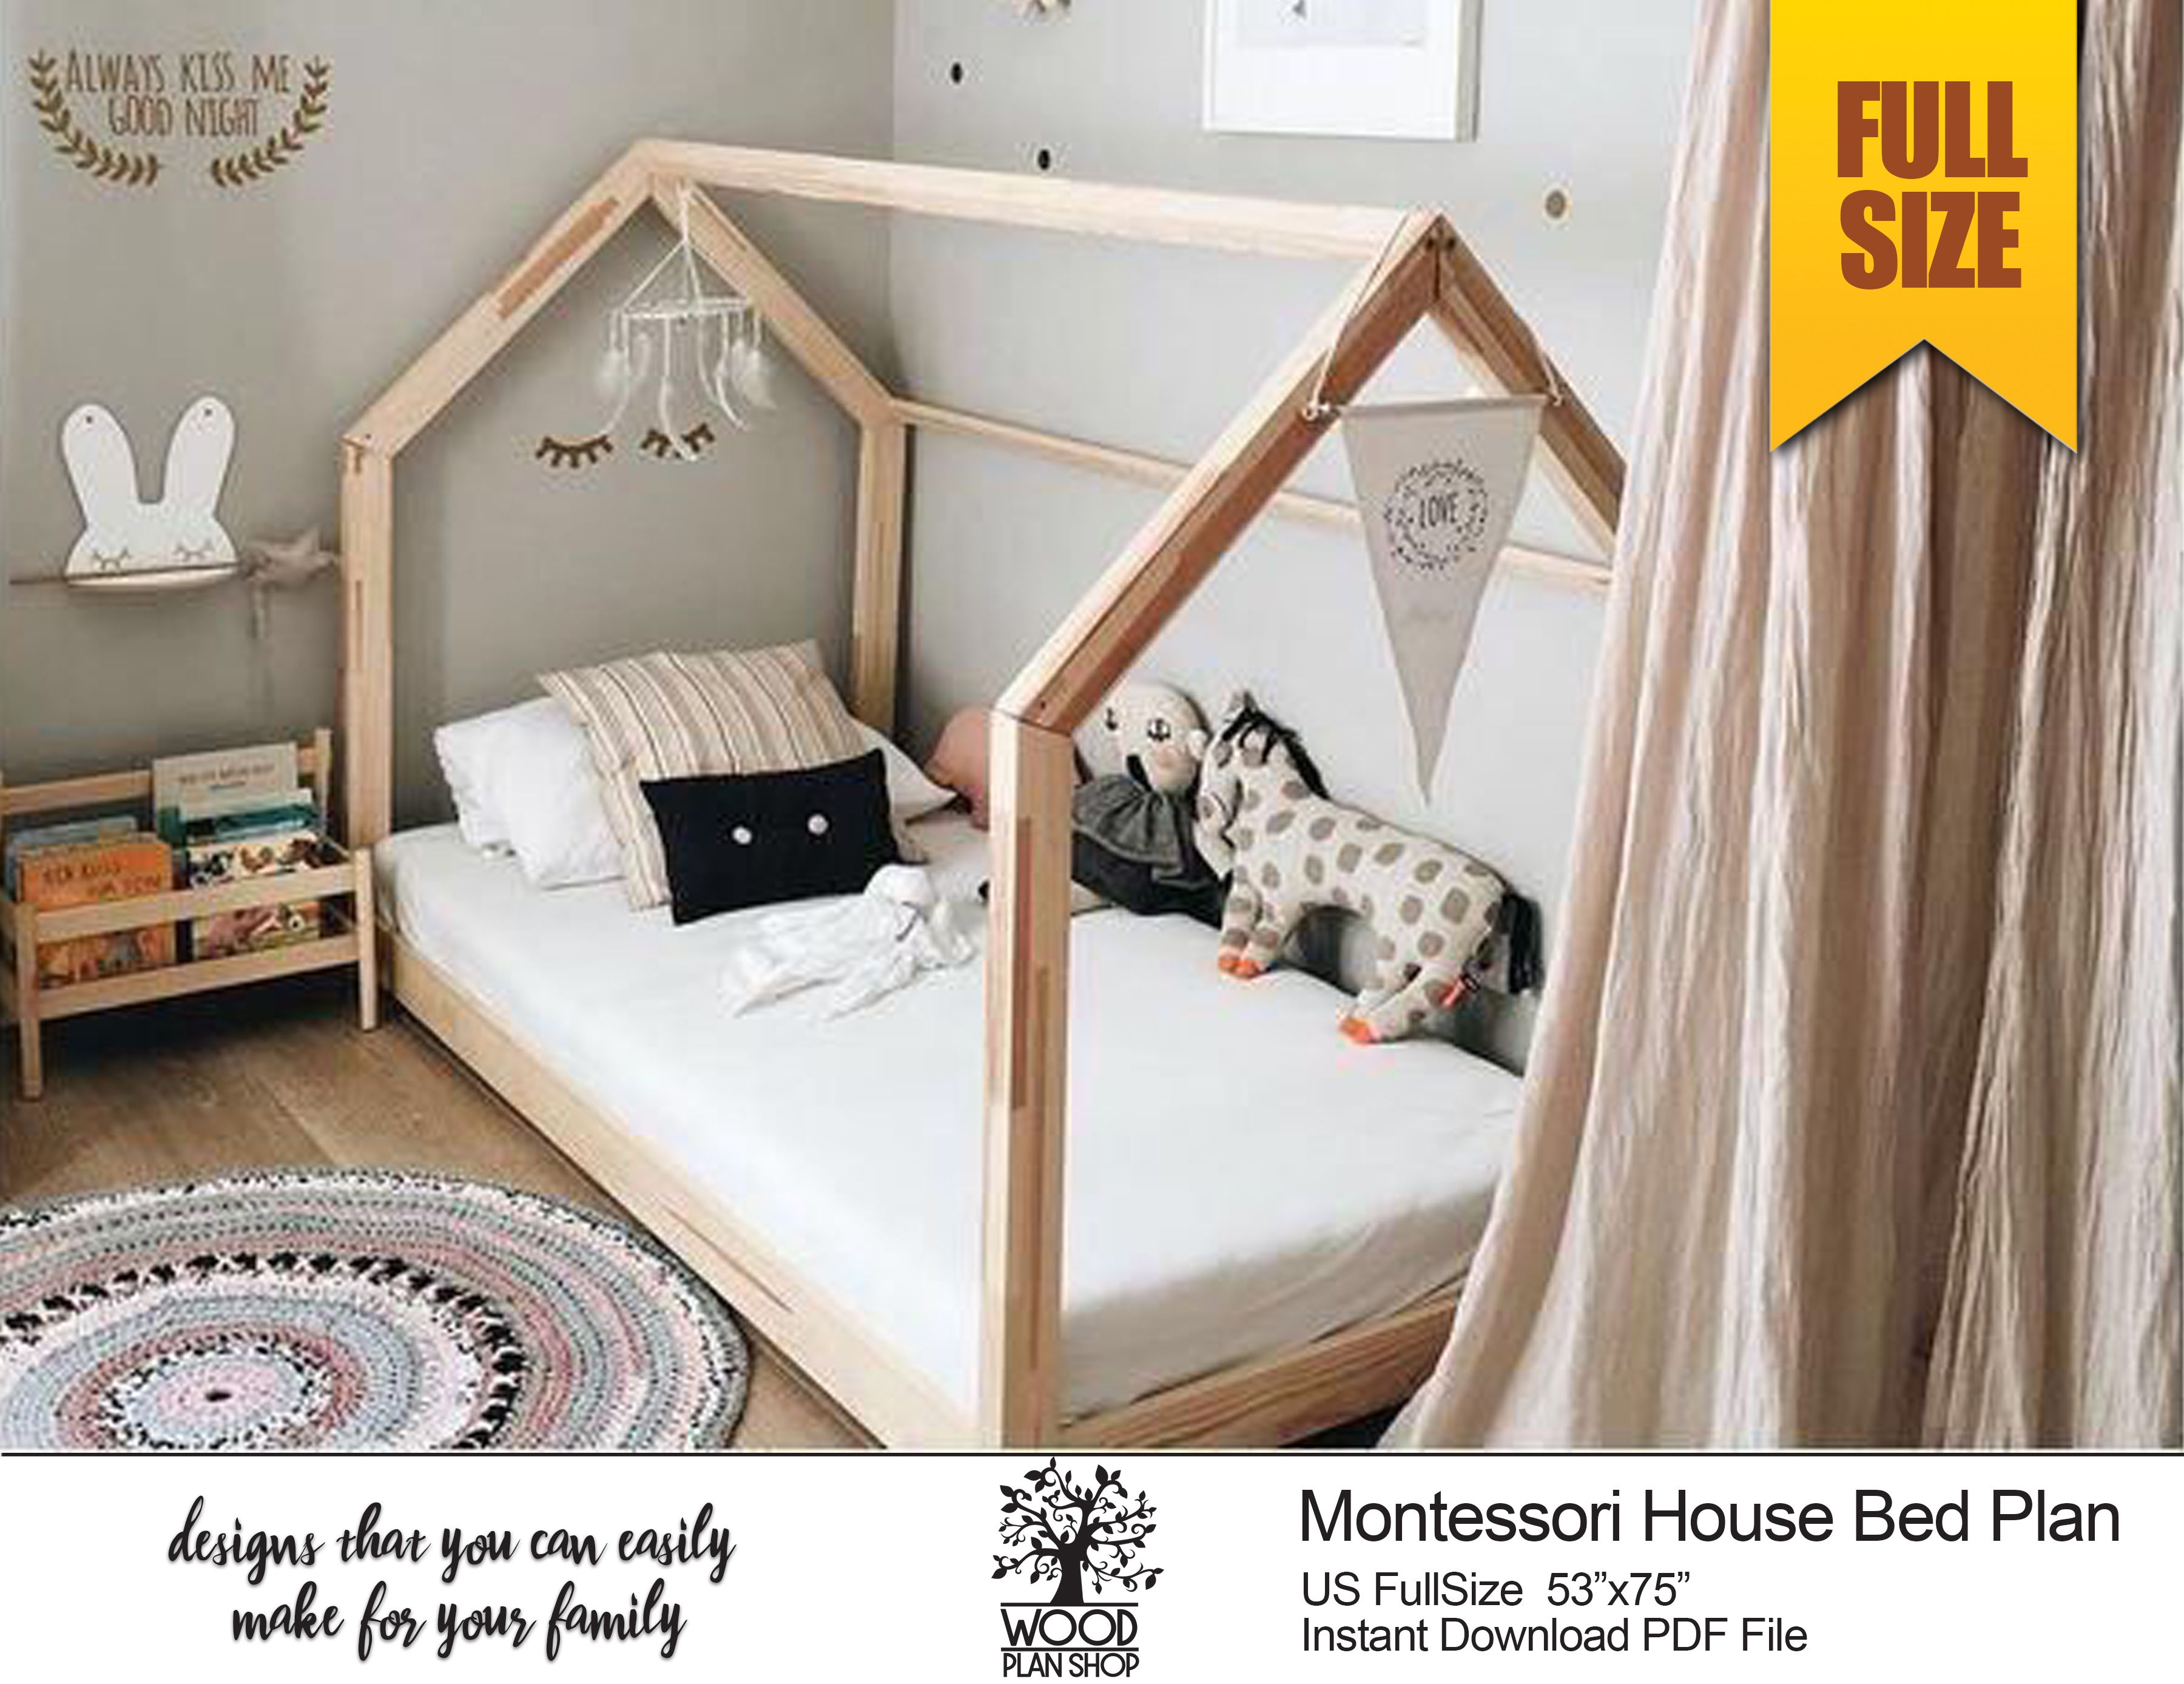 Toddler House Bed Plan Full Size Bed Frame Plan For Montessori Bedroom Diy Pdf Plan Wooden Floor Toddler House Bed Bed Plans Twin Size Bed Frame